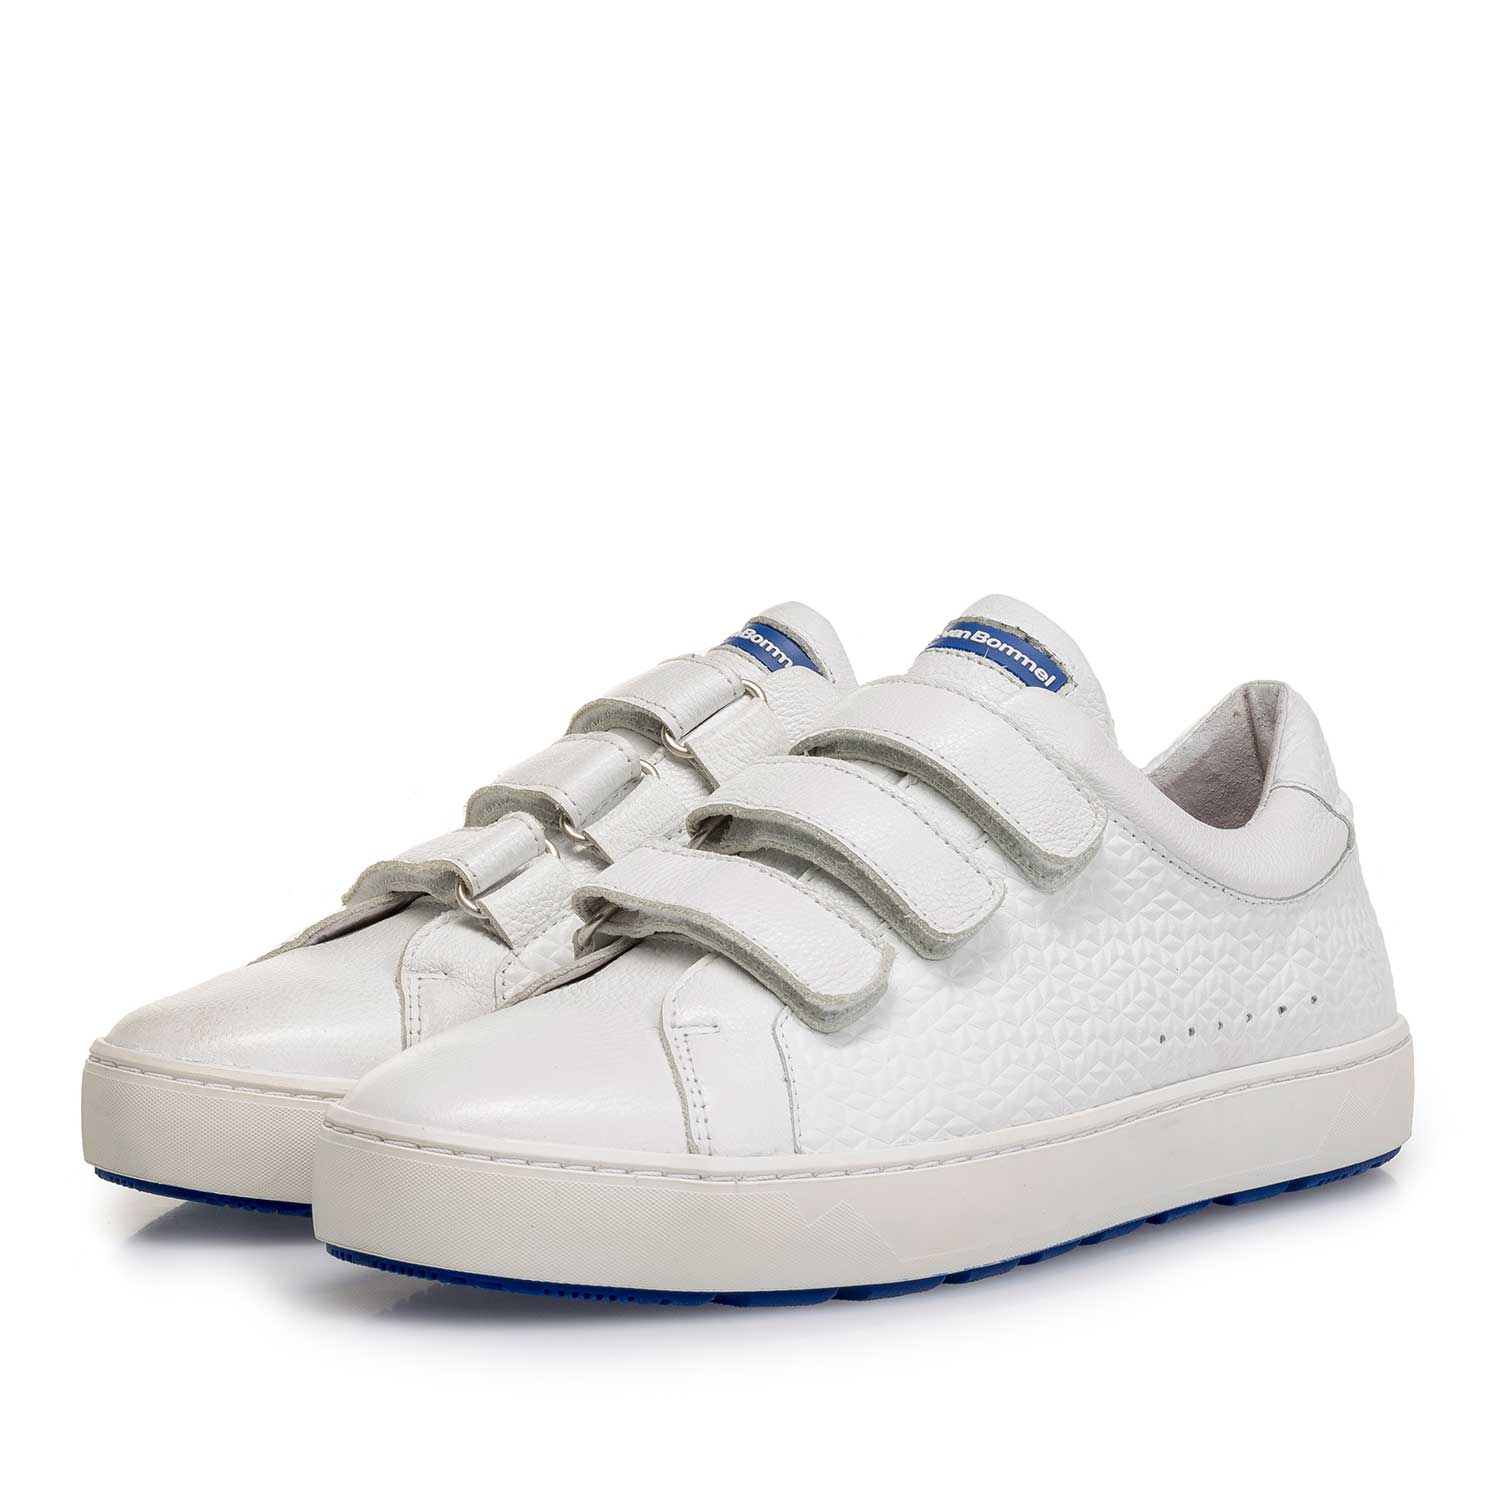 85273/17 - White slightly structured leather sneaker